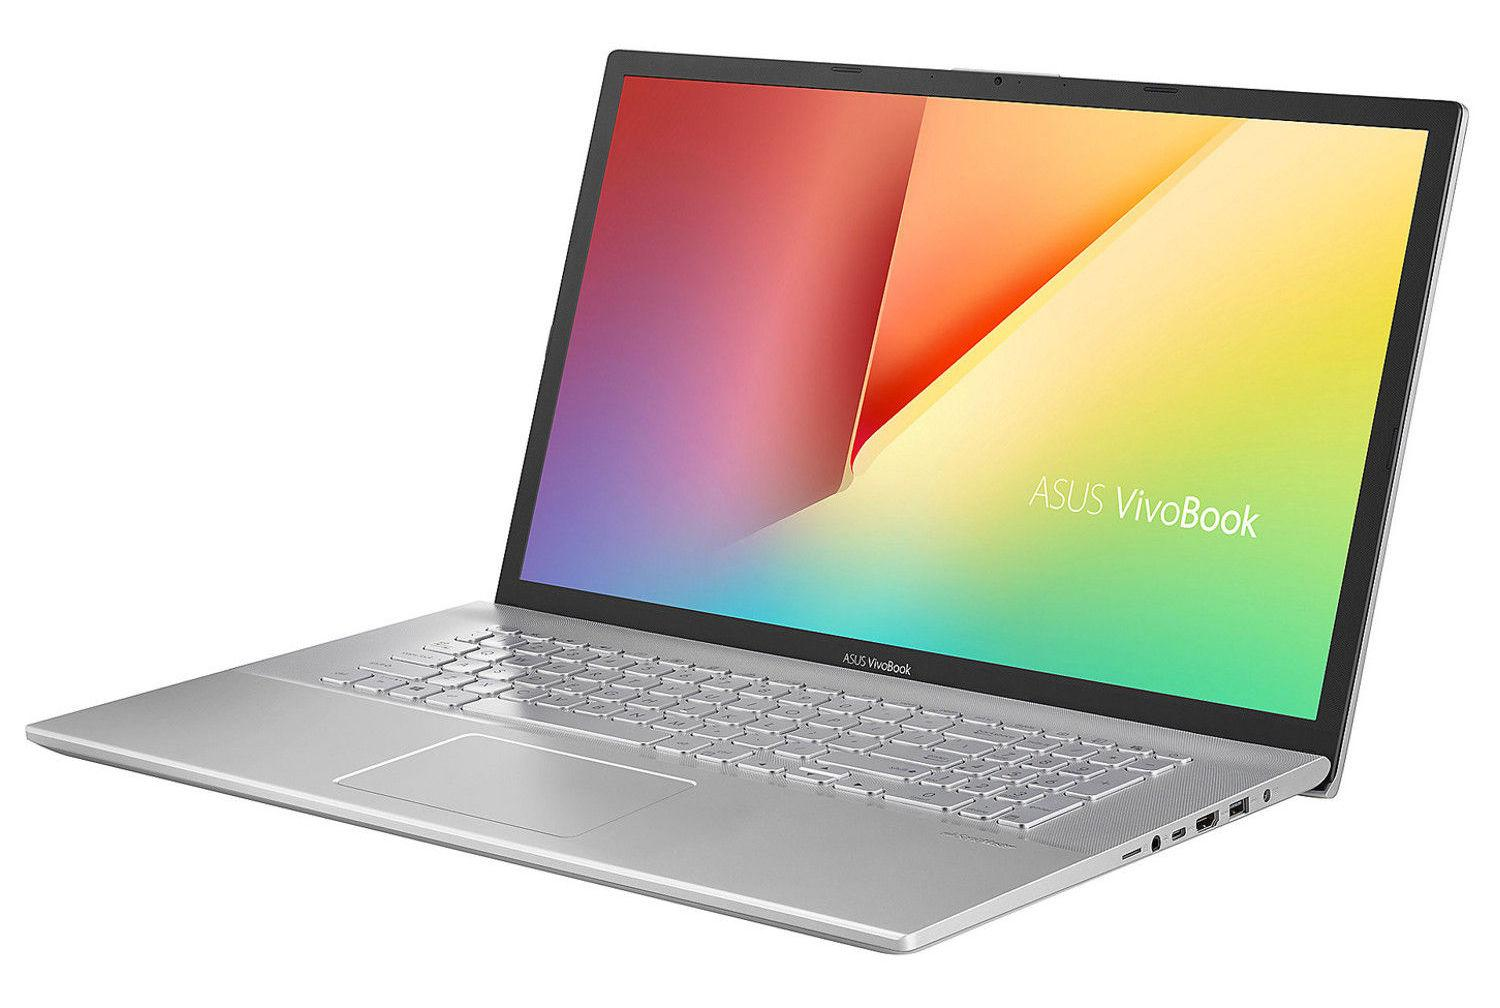 Ordinateur portable Asus VivoBook X712FB-AU121T Argent - SSD, MX110 - photo 3